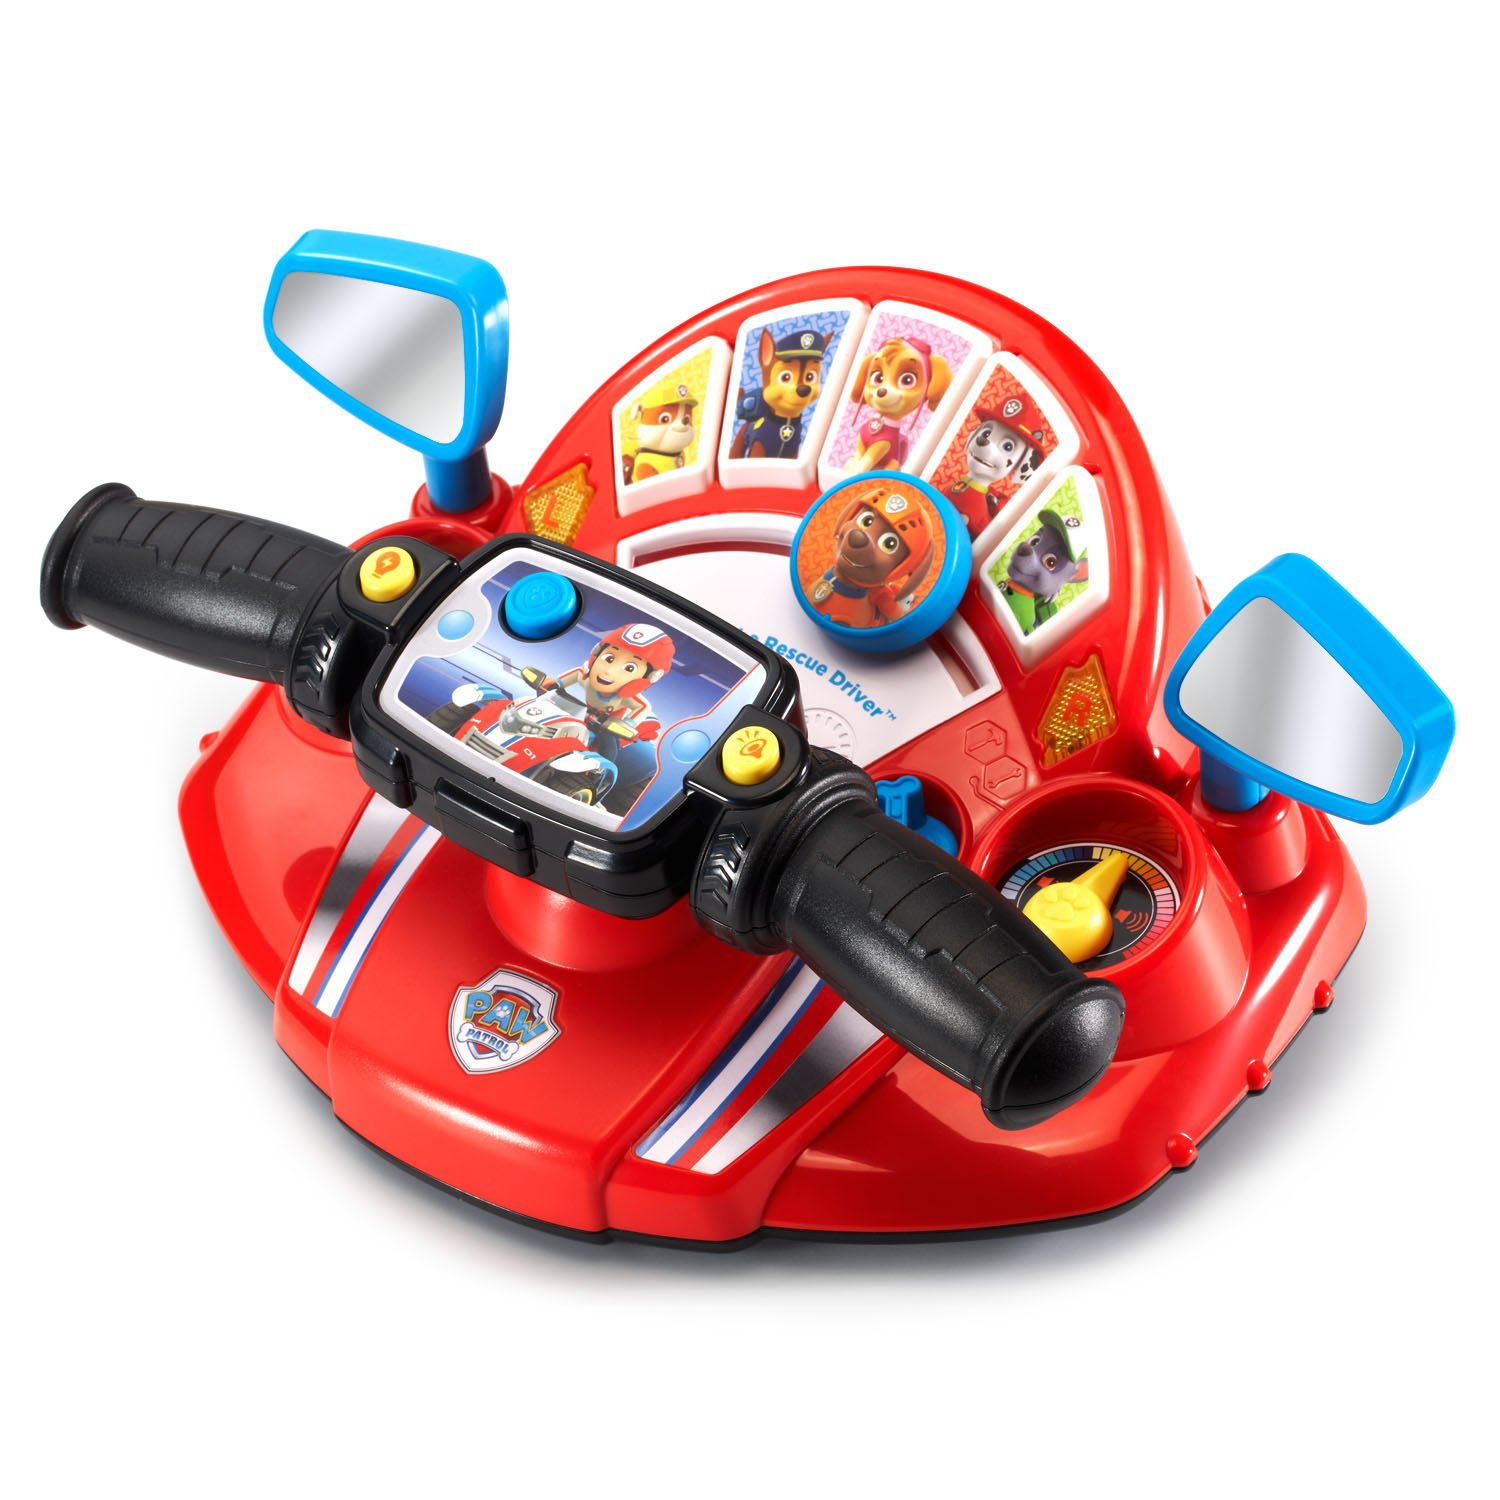 VTech Paw Patrol Pups to The Rescue Driver only $16.49! (was $39.99)